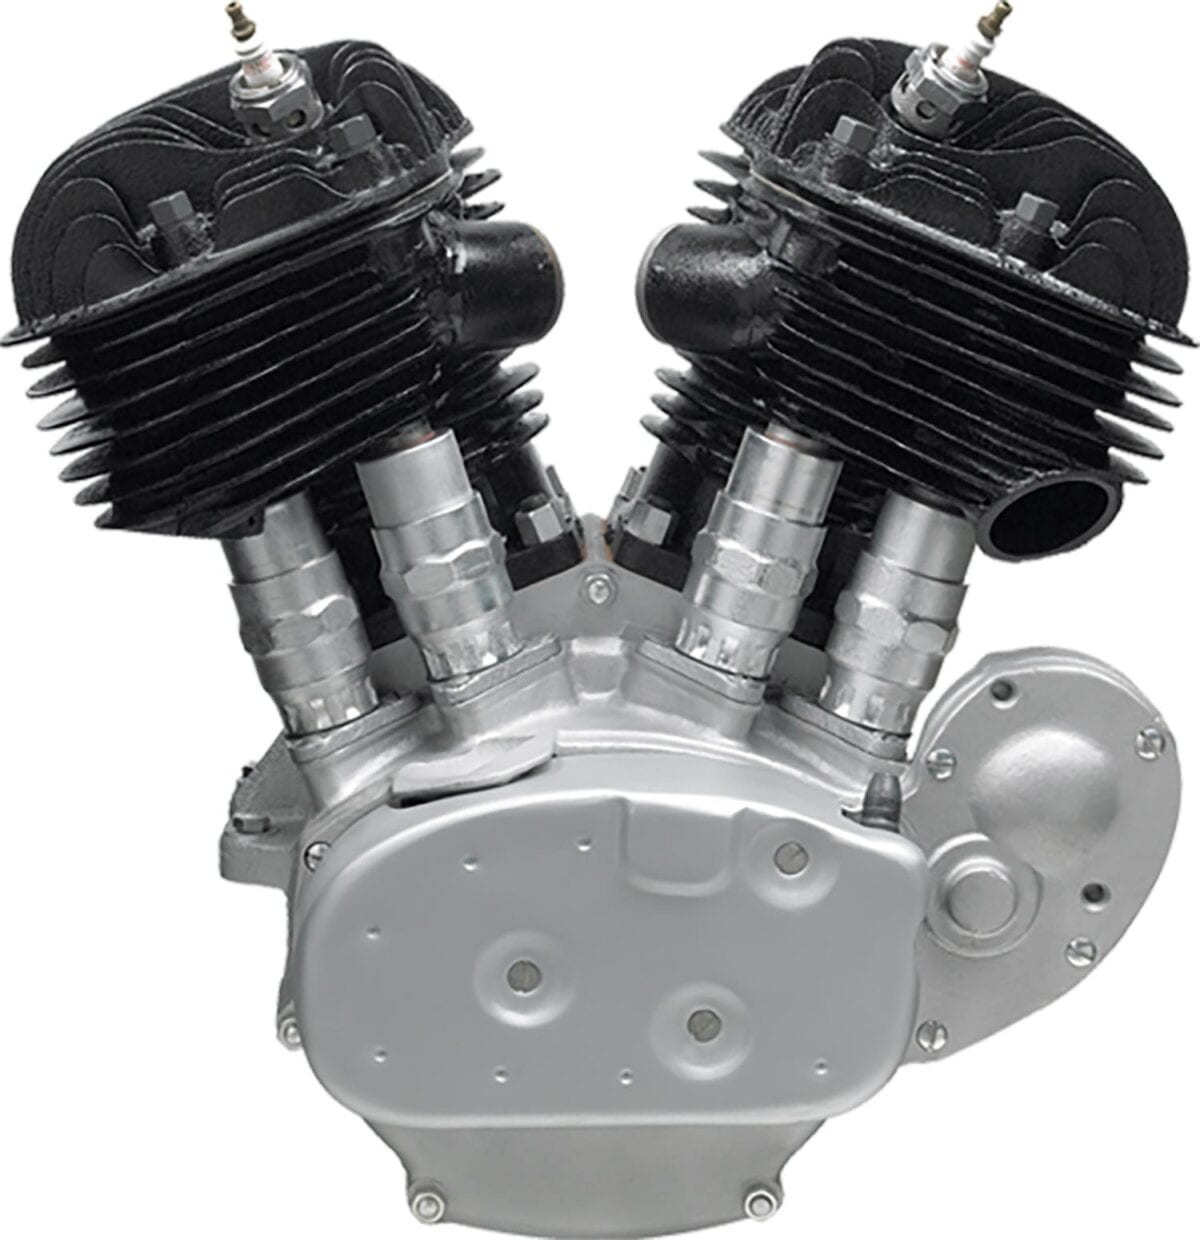 Types Of Motorcycle Engines: History: Know Your Harley-Davidson Engine Types